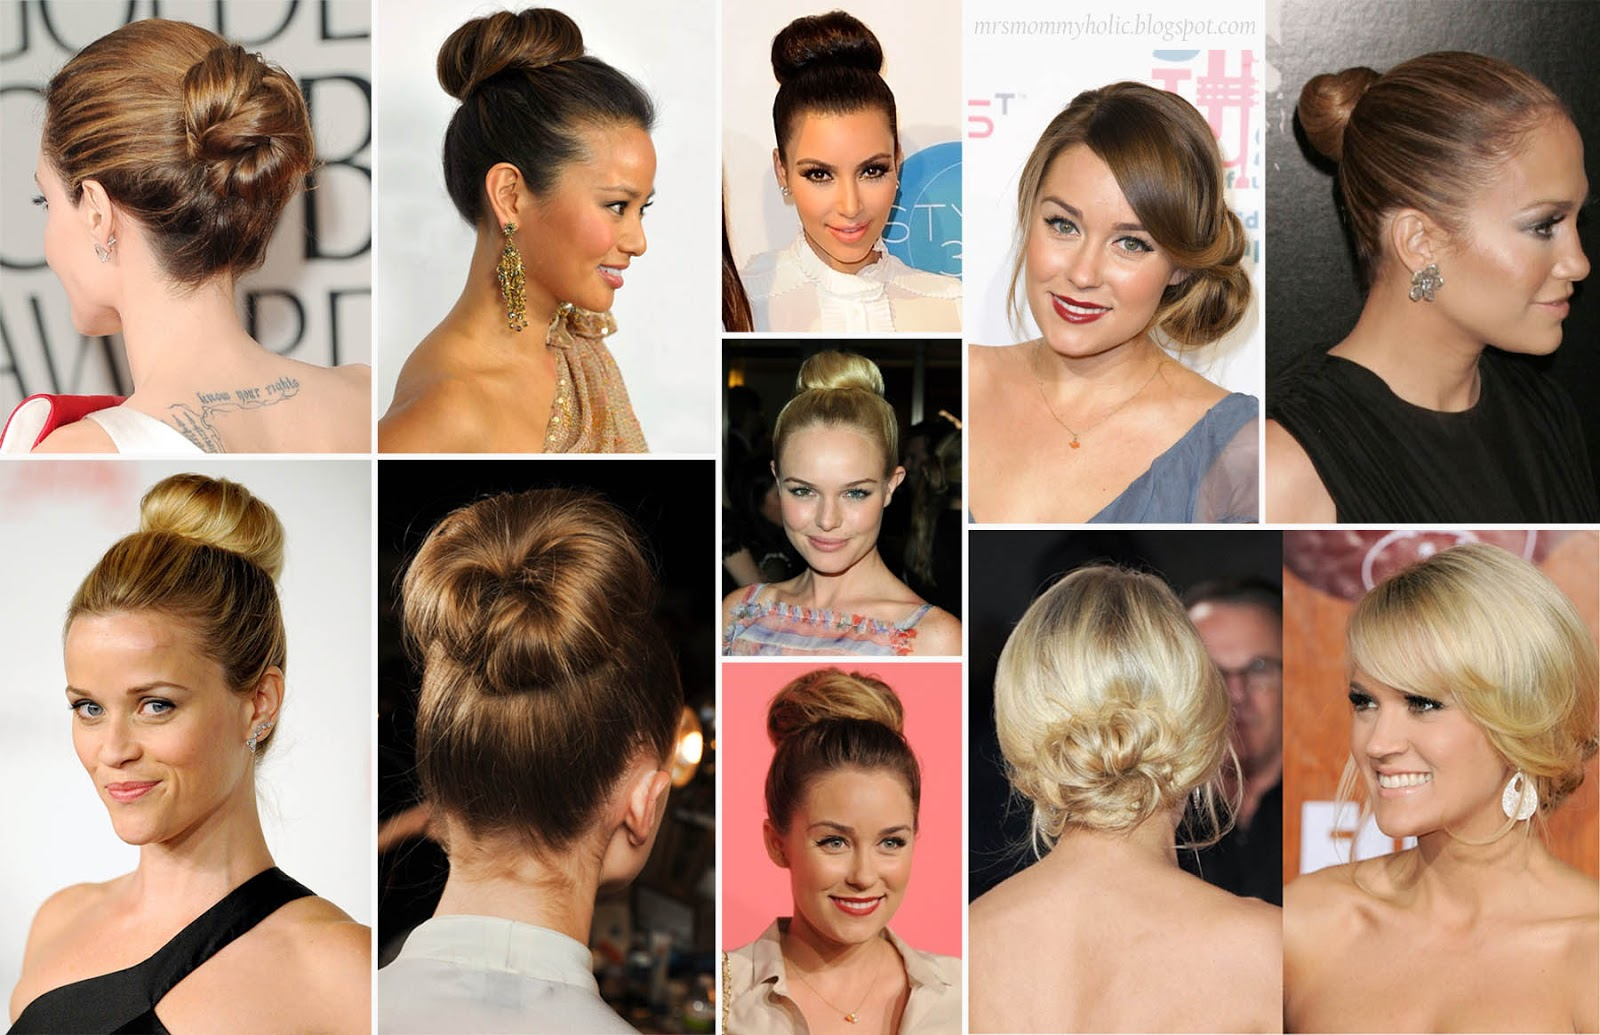 Enjoyable Mrsmommyholic Easiest Hairstyle Ever The Donut Bun Hairstyles For Men Maxibearus